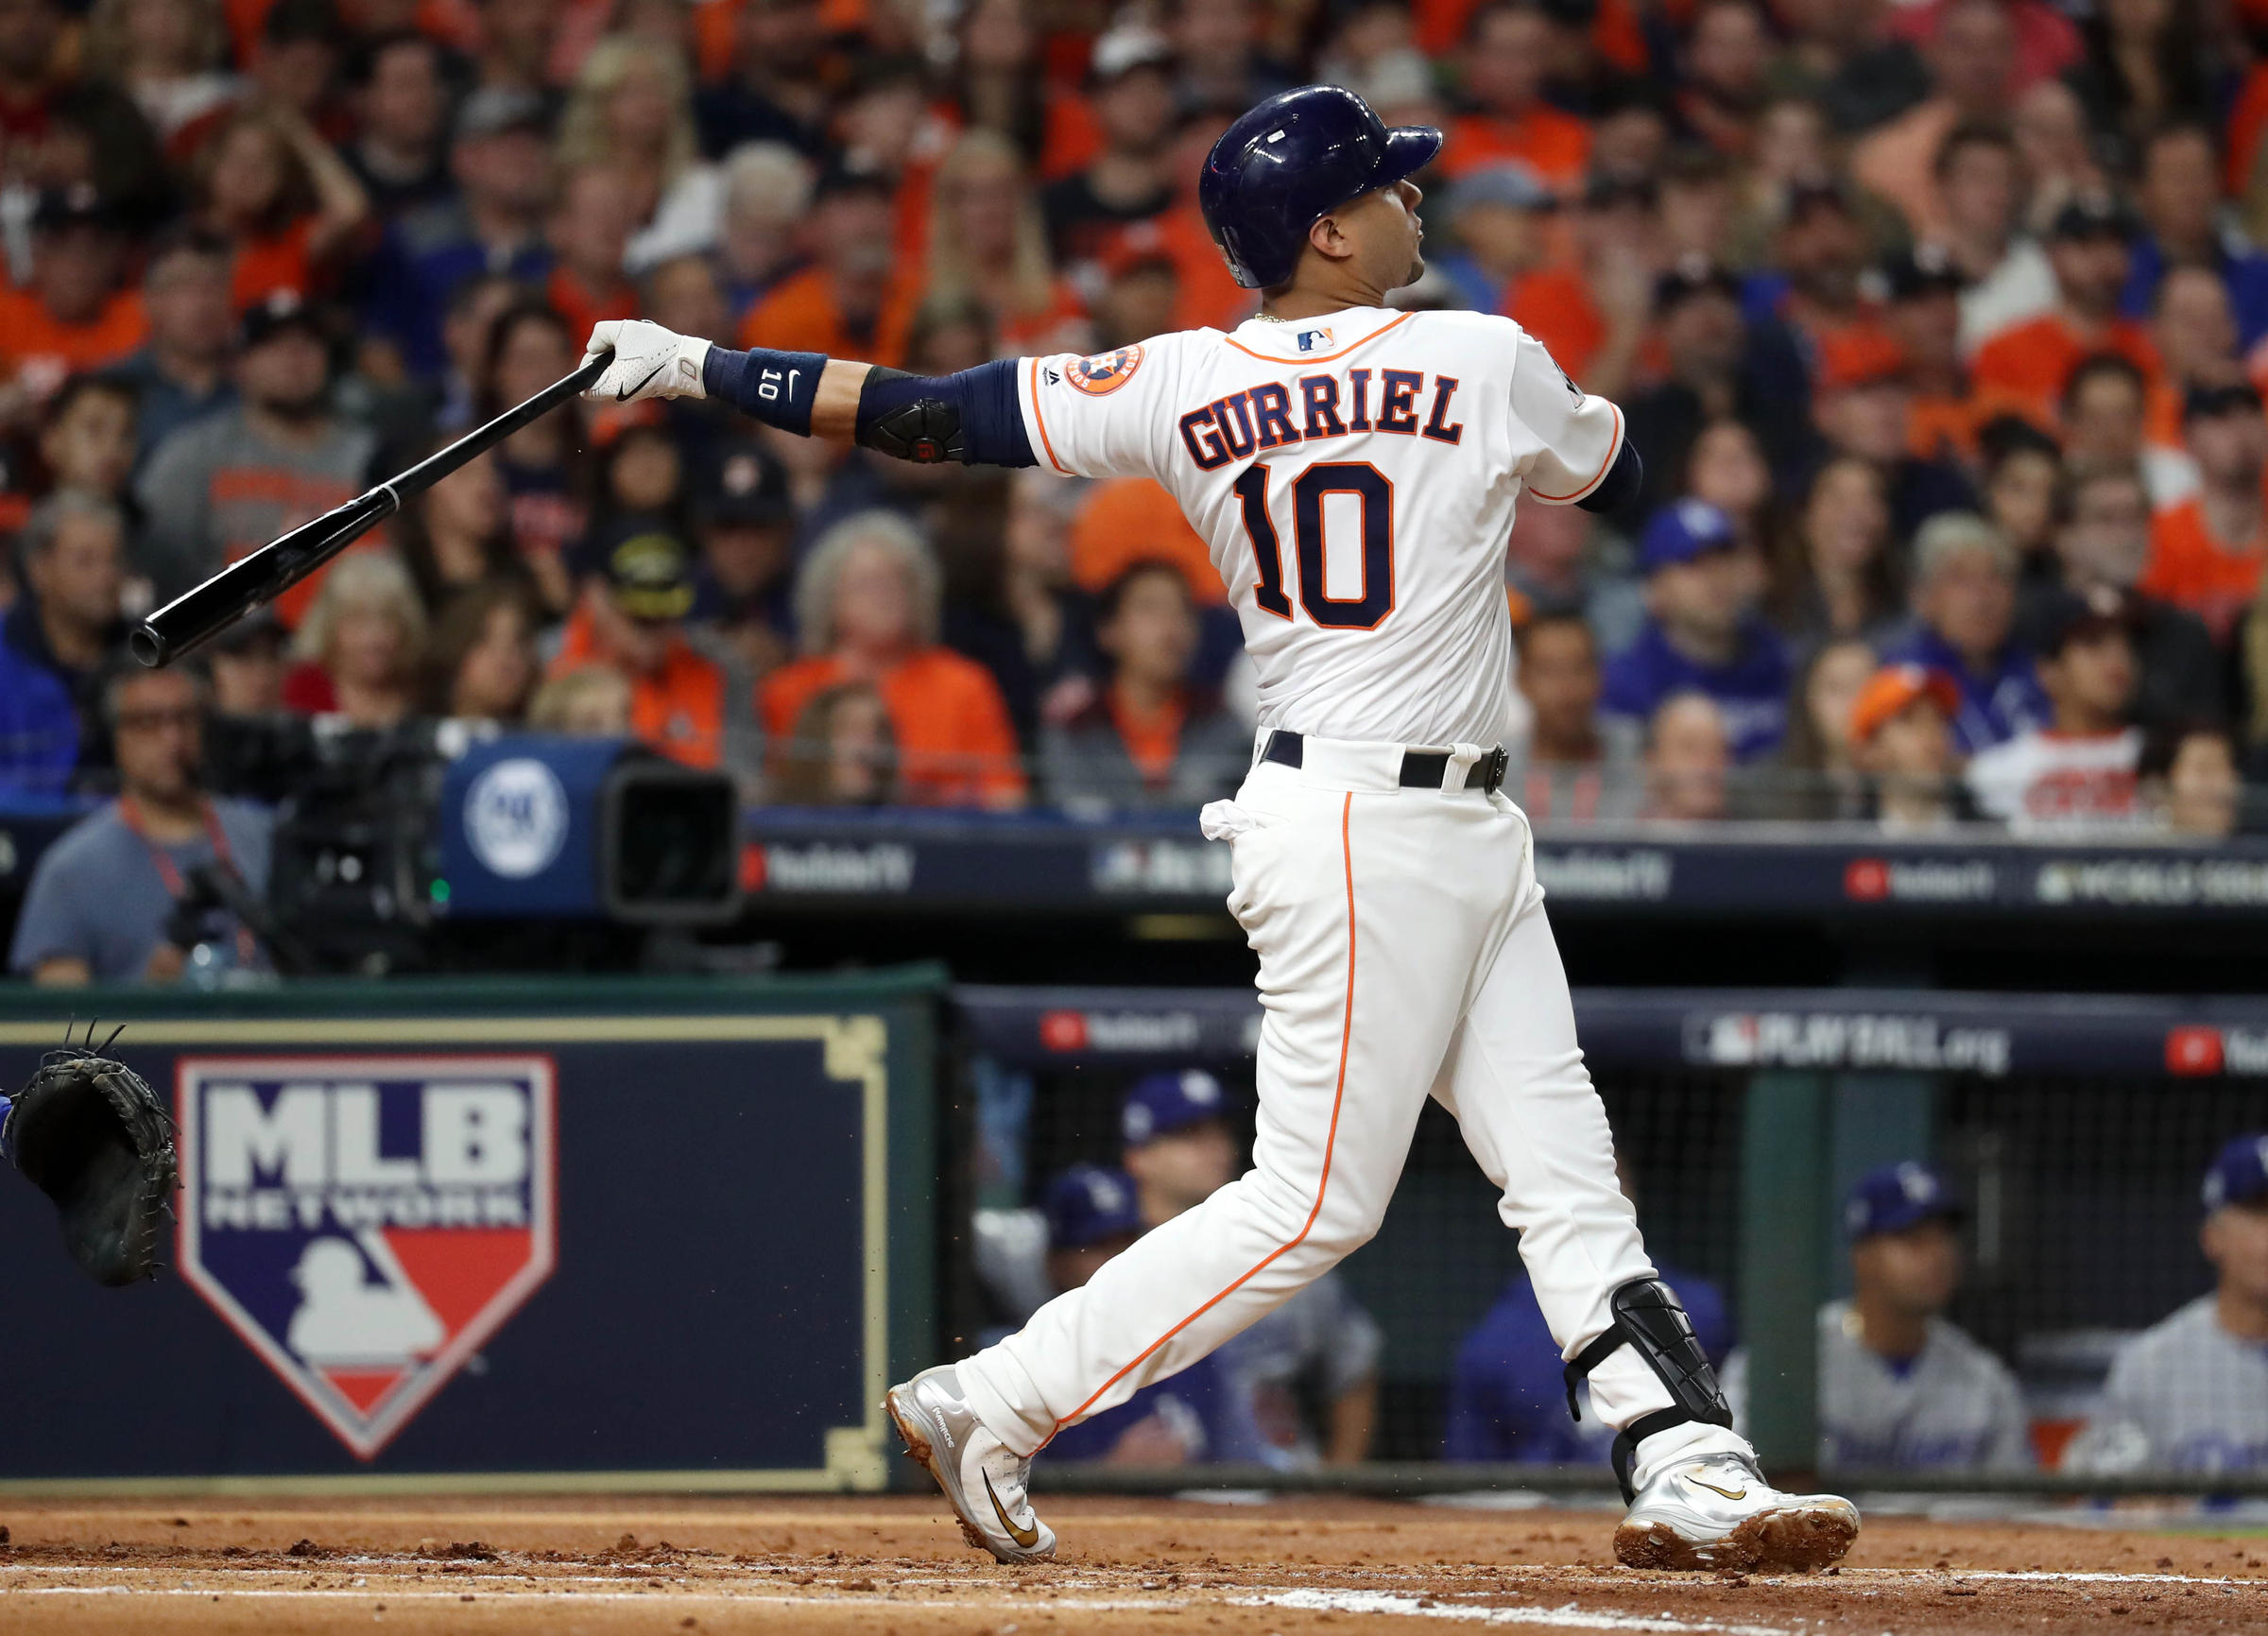 It's just a picture of Houston Astros Printable Schedule within spring training